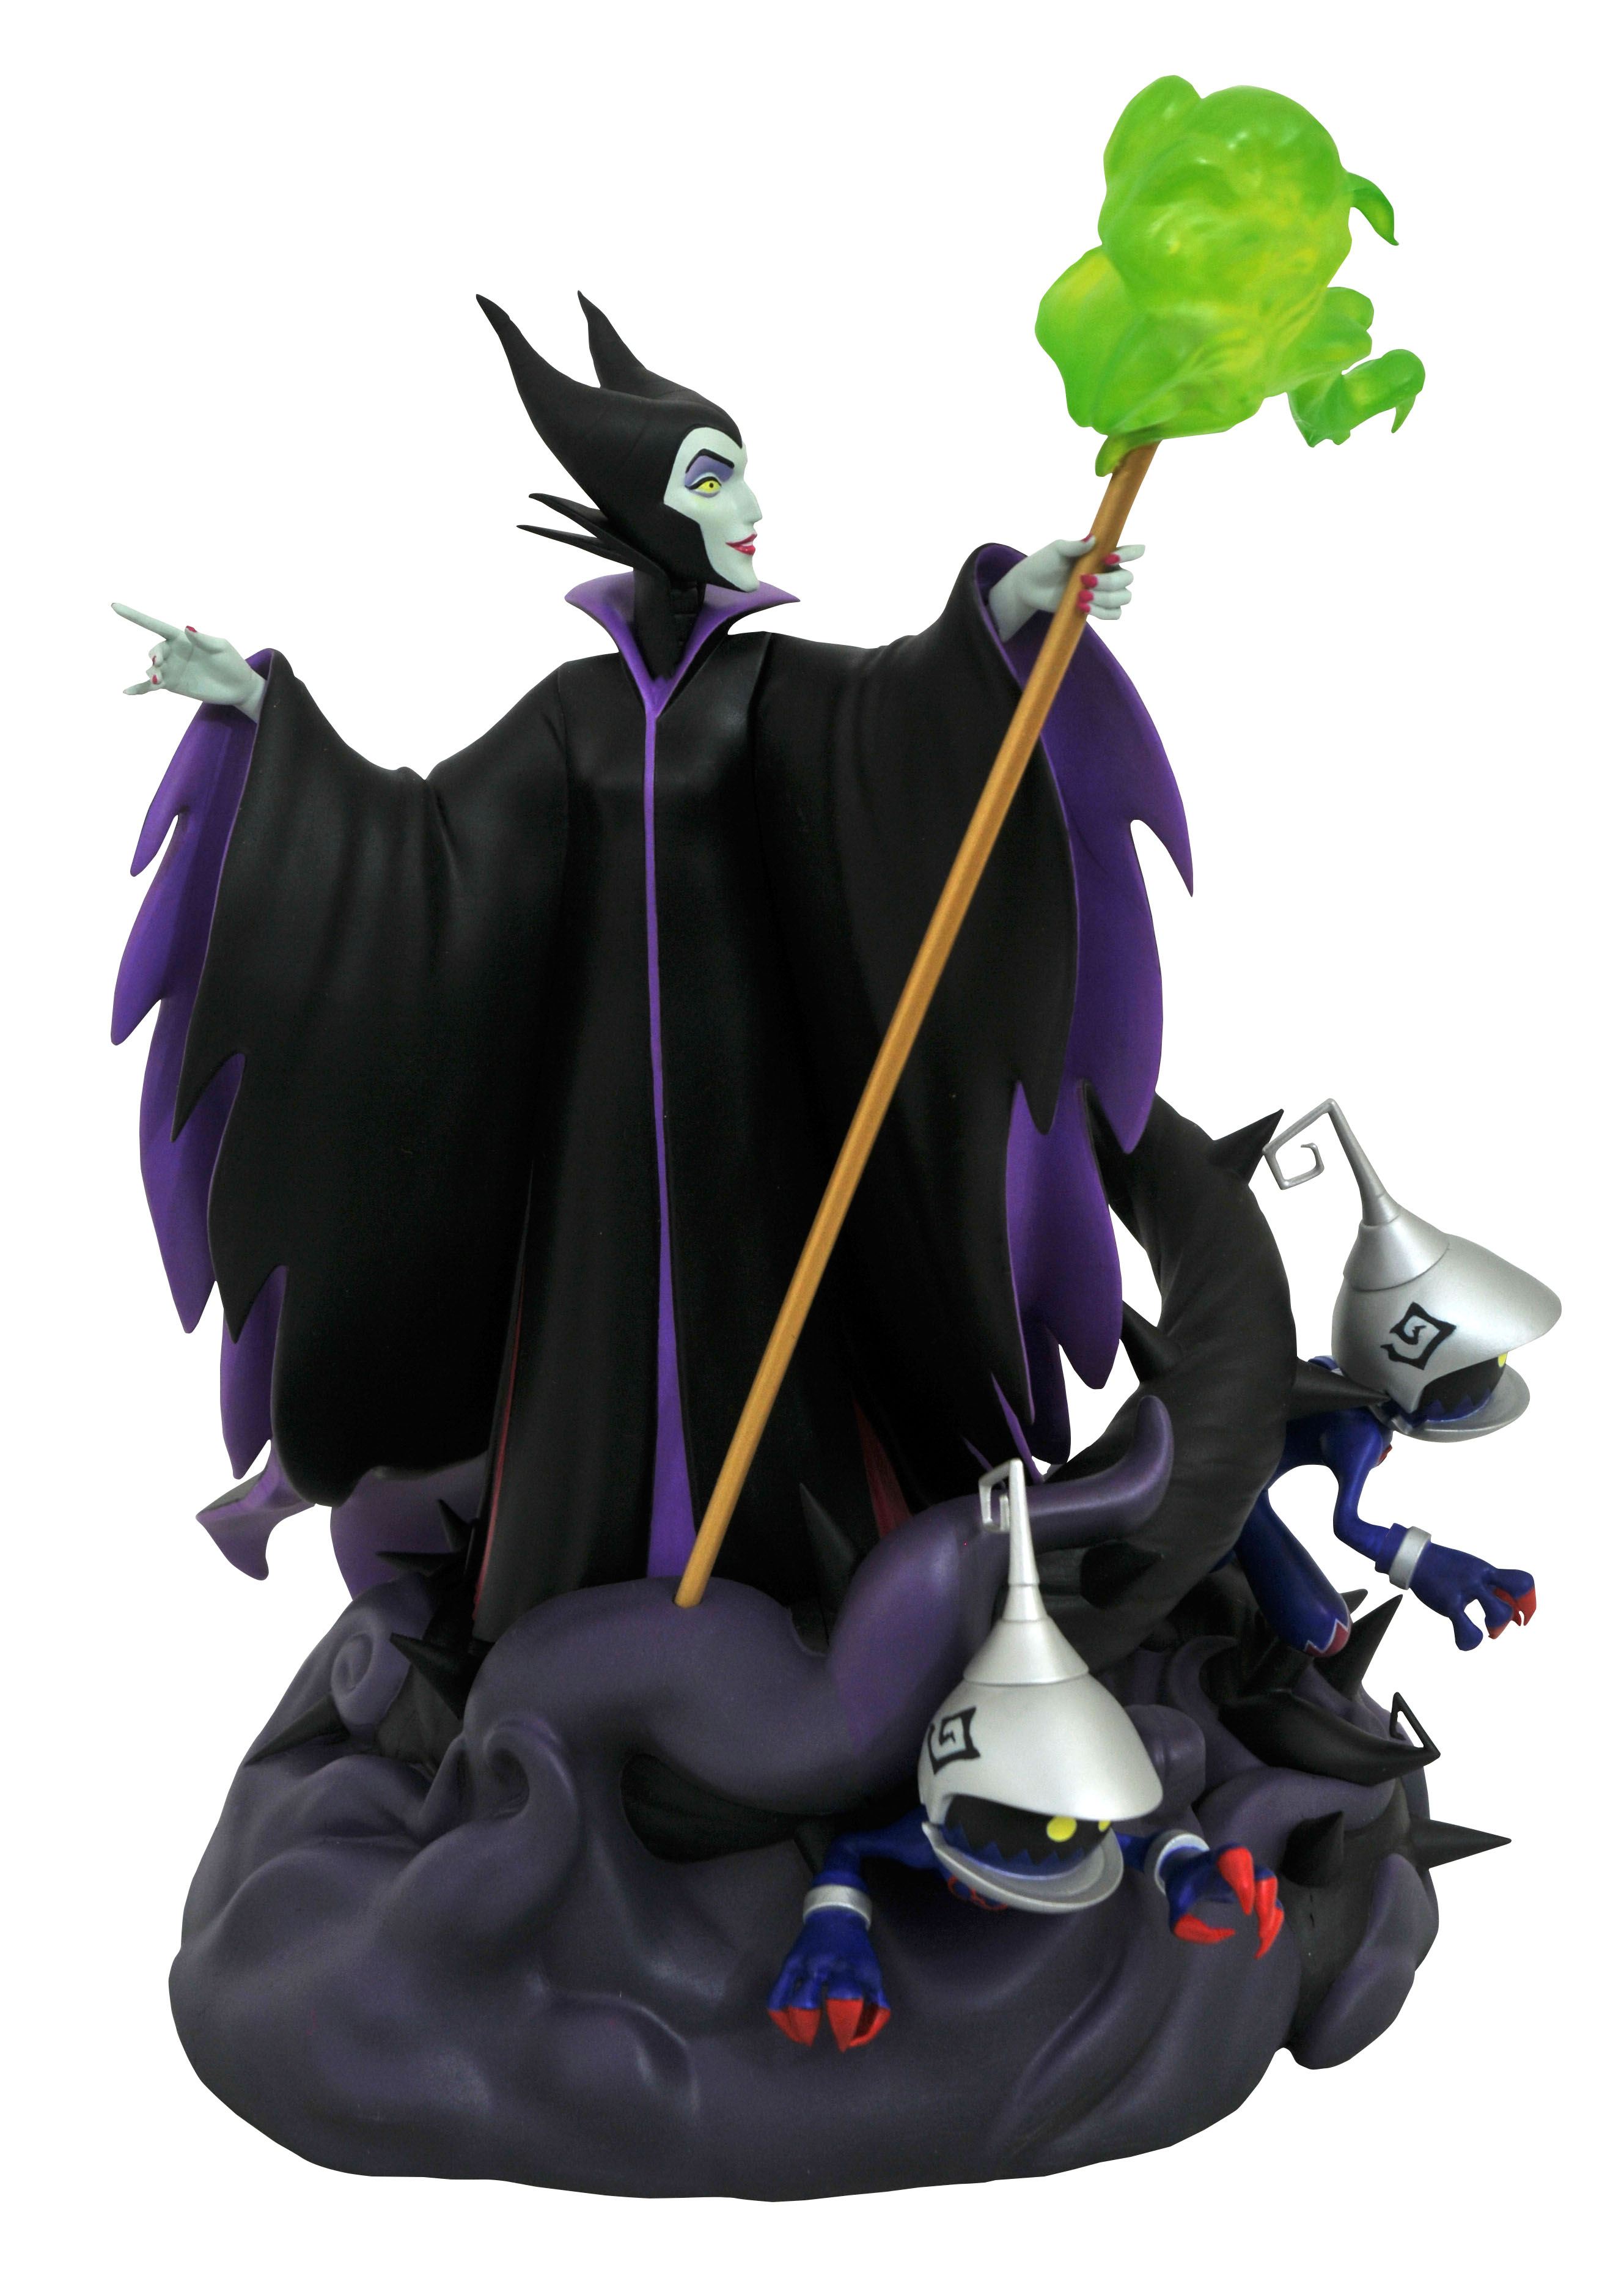 KINGDOM HEARTS 3 GALLERY MALEFICENT PVC STATUE (GAMESTOP) (C